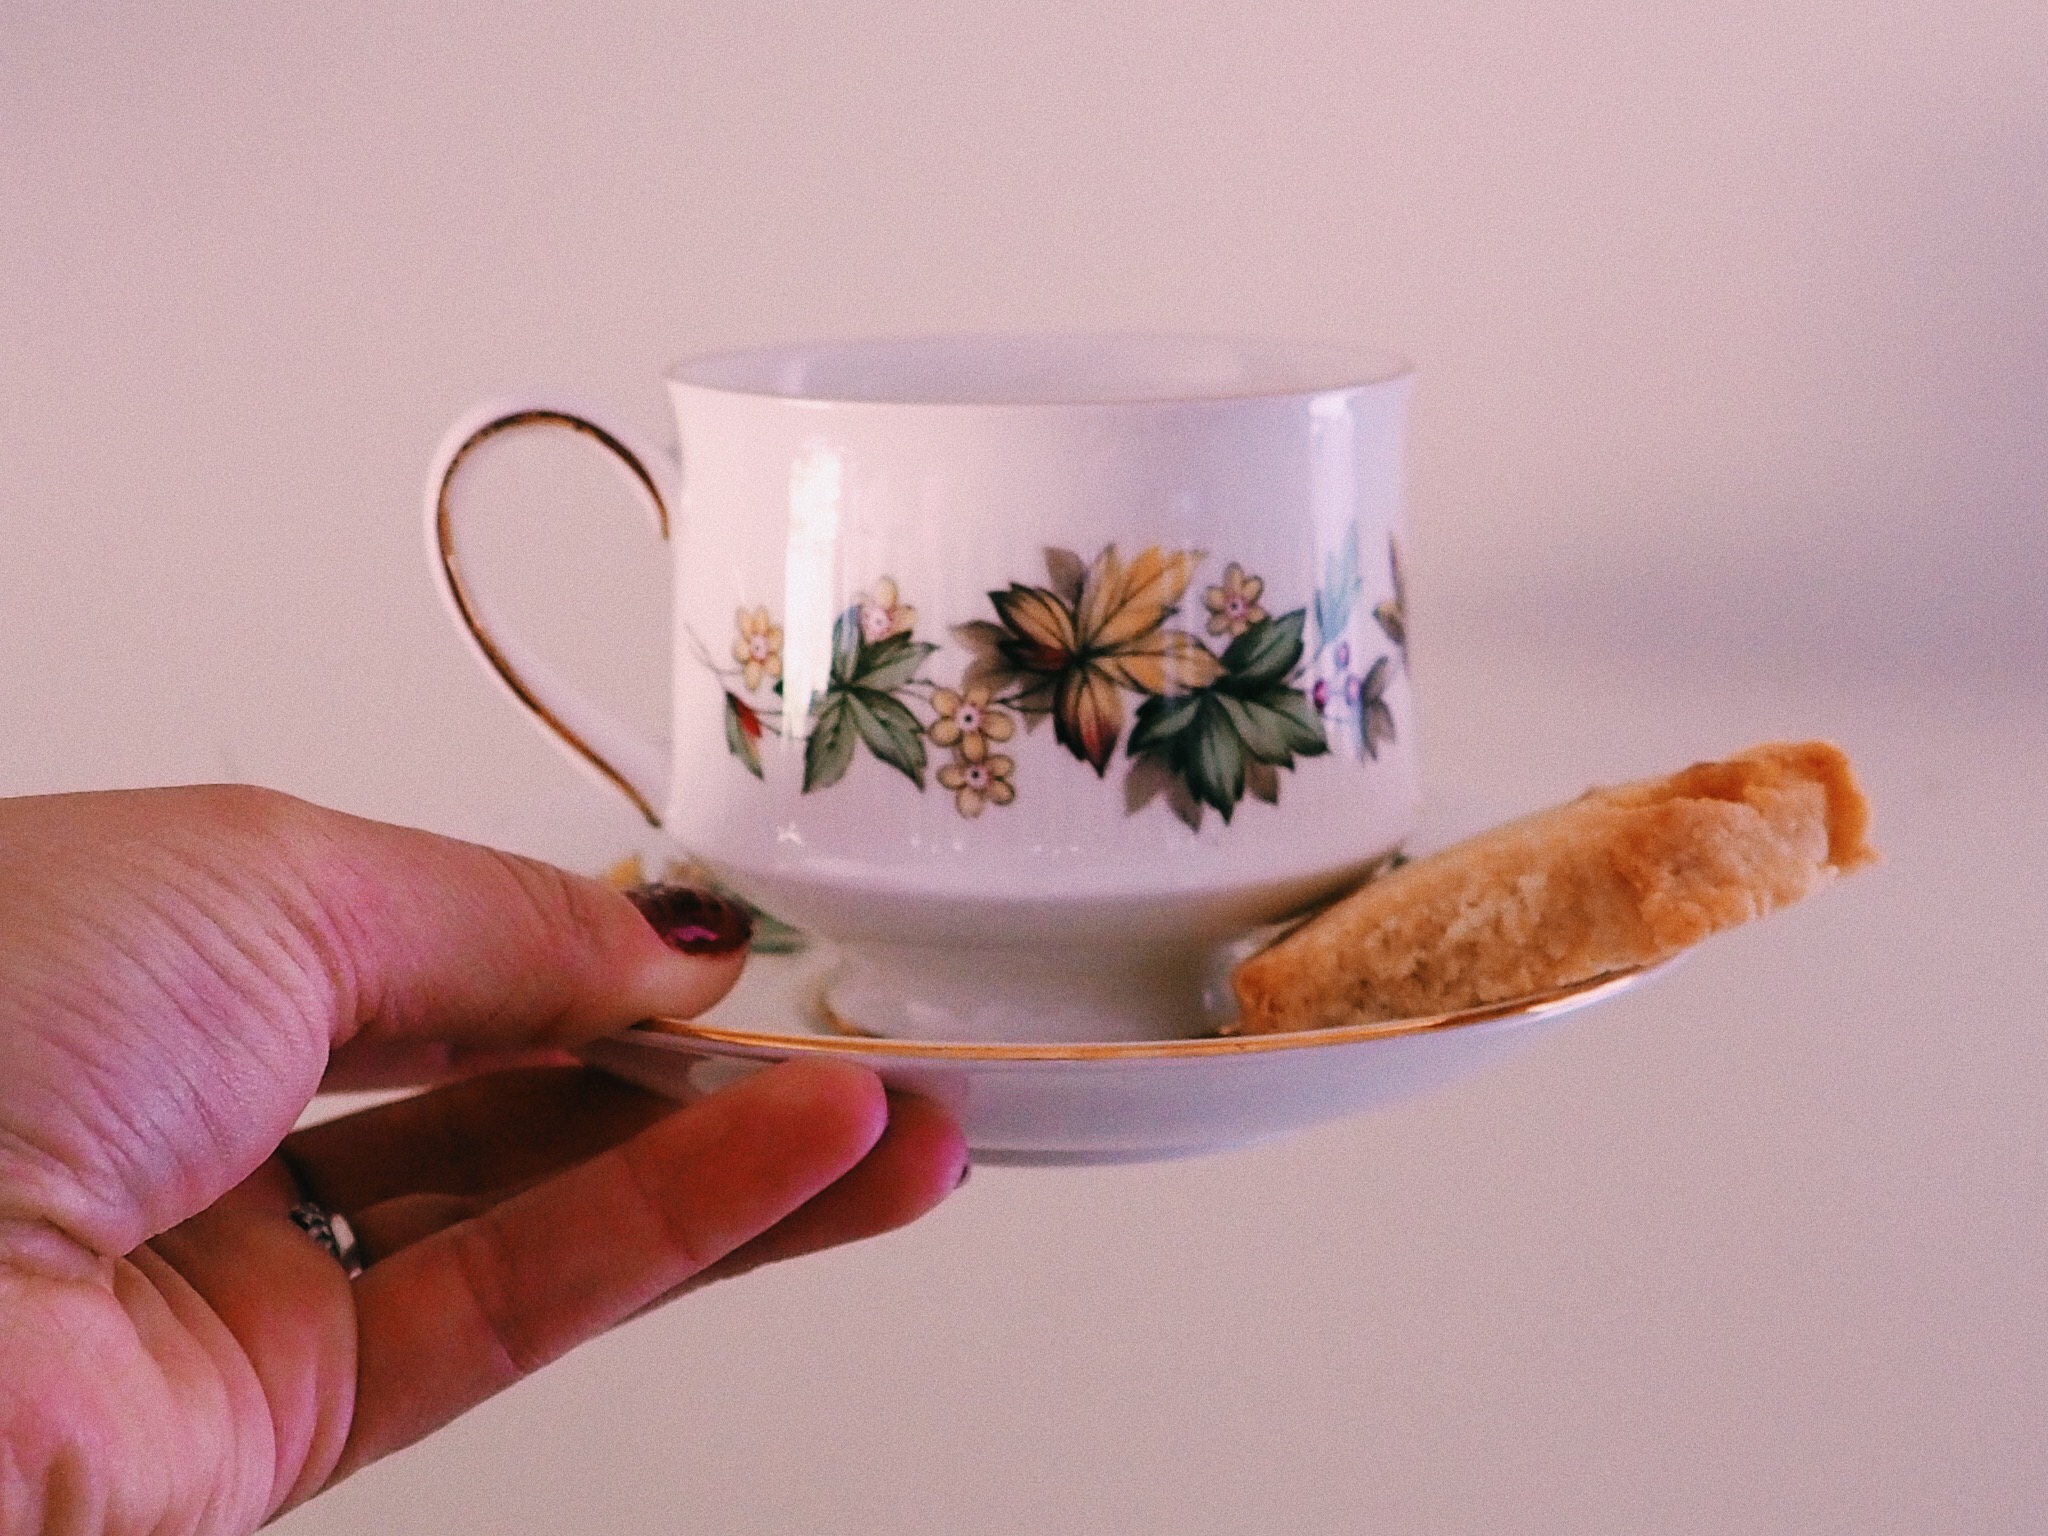 Holding a cup and saucer of tea with a biscuit on the side